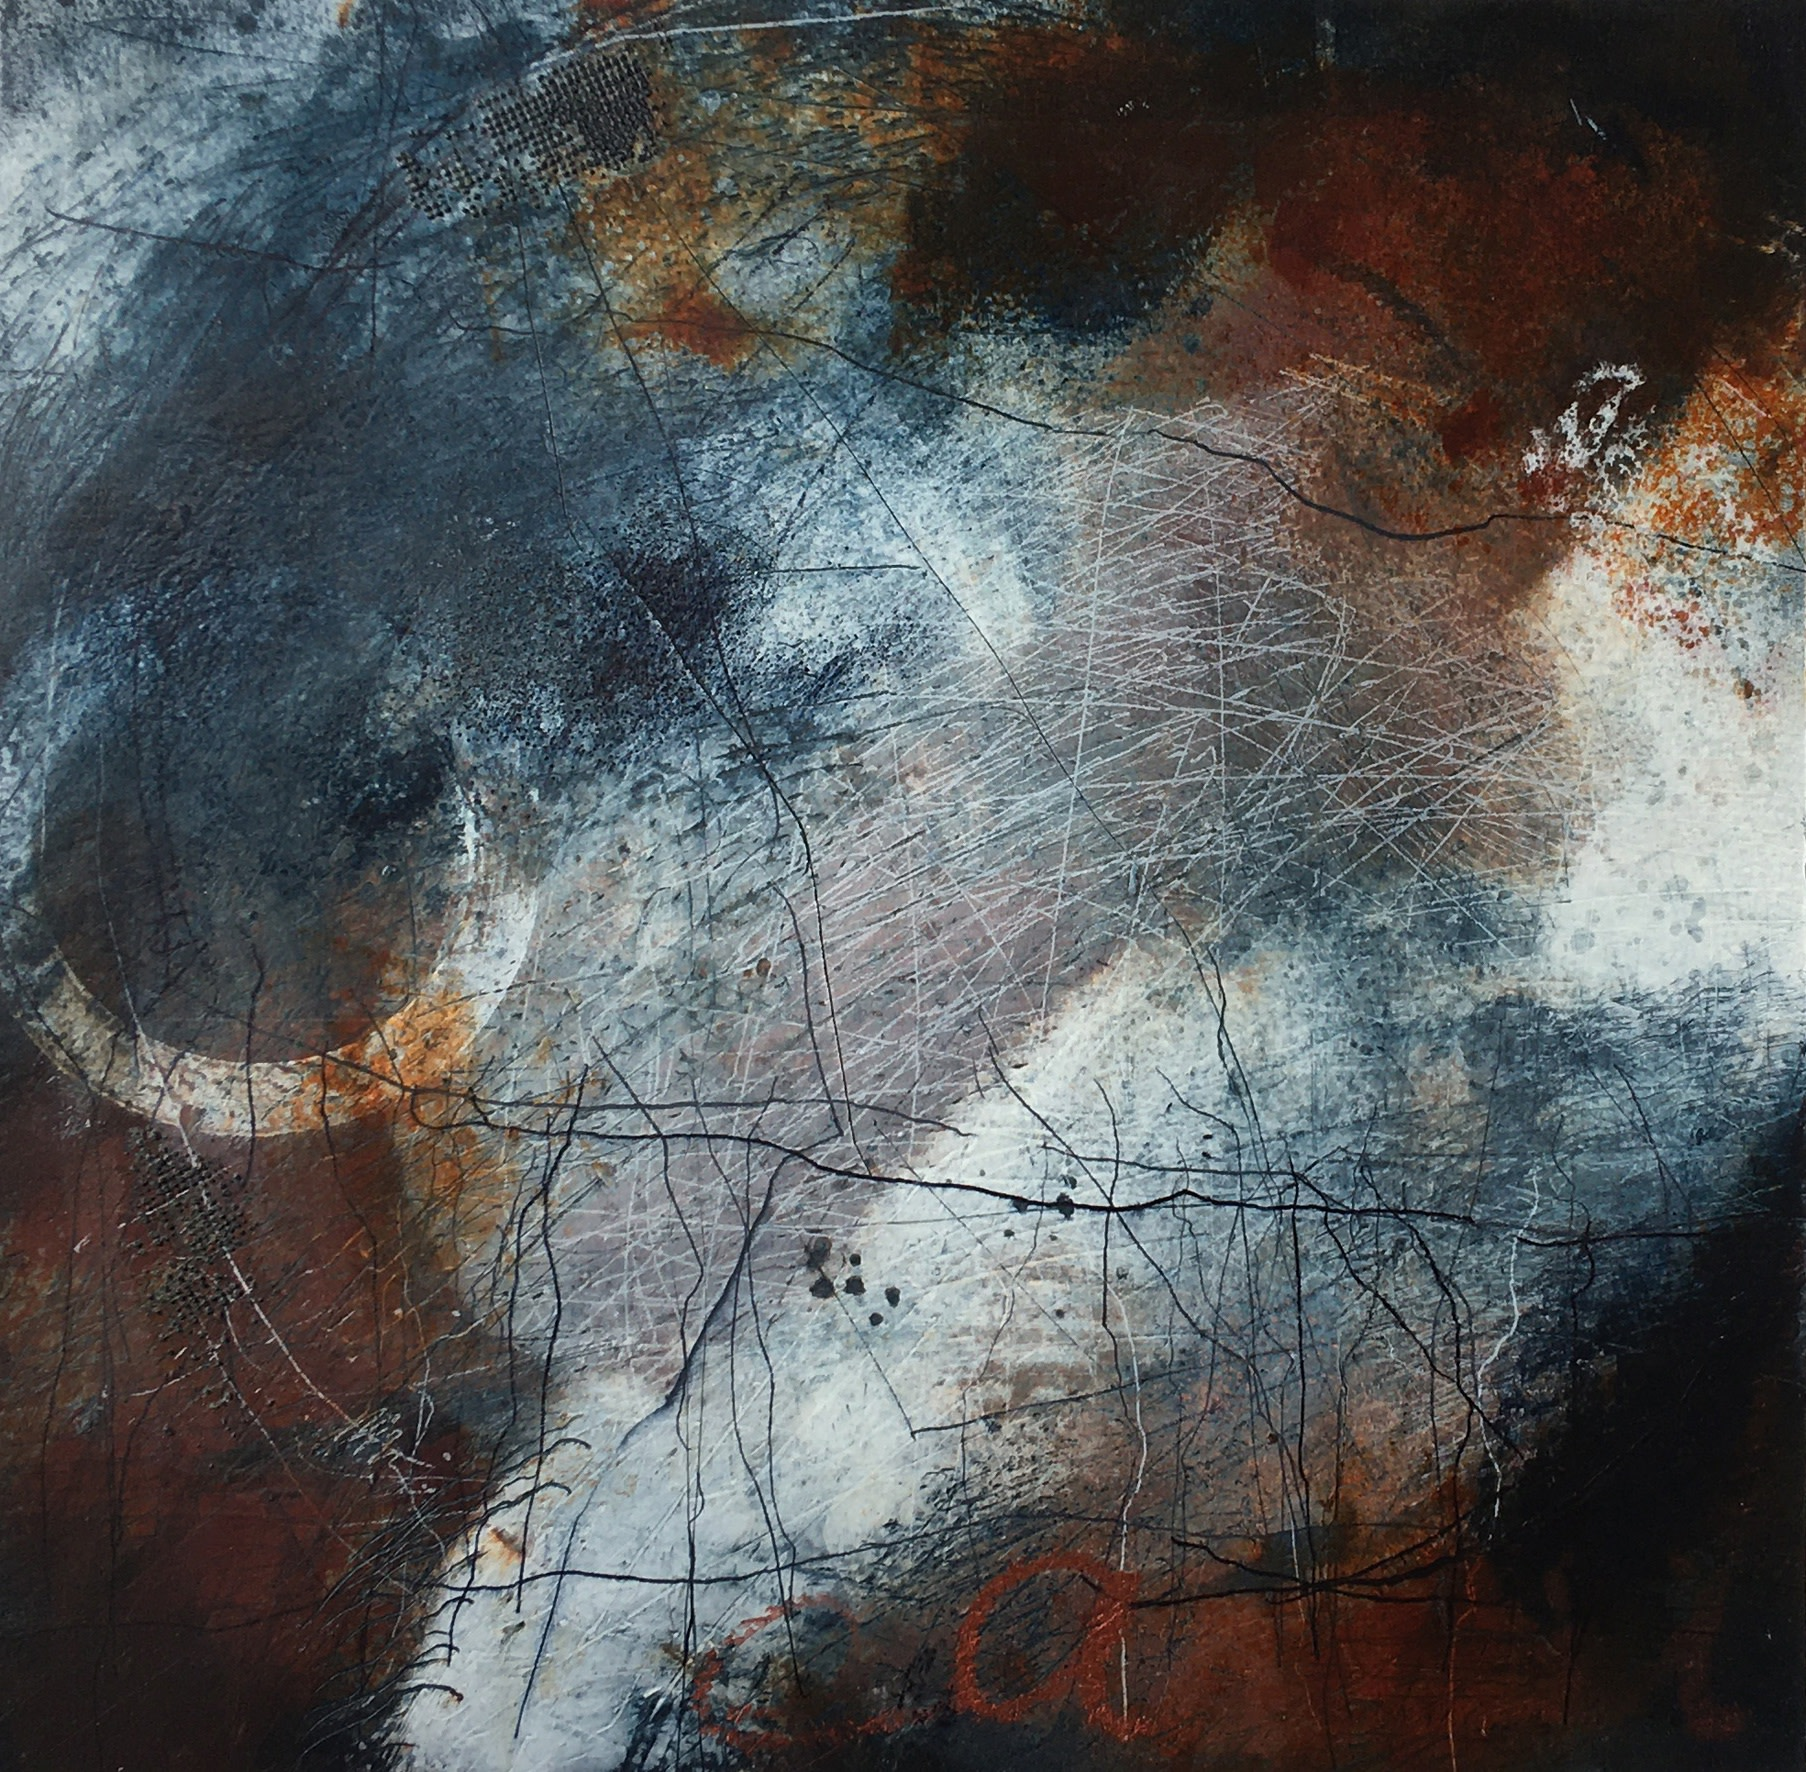 "<span class=""link fancybox-details-link""><a href=""/exhibitions/24/works/artworks_standalone11355/"">View Detail Page</a></span><div class=""artist""><span class=""artist""><strong>Bren Unwin PPRE Hon RWS</strong></span></div><div class=""title""><em>Frisson</em></div><div class=""medium"">monotype: oil and mixed media on paper</div><div class=""dimensions"">47 x 47 cm framed size<br>31 x 31 cm image size</div><div class=""edition_details"">1/1</div>"